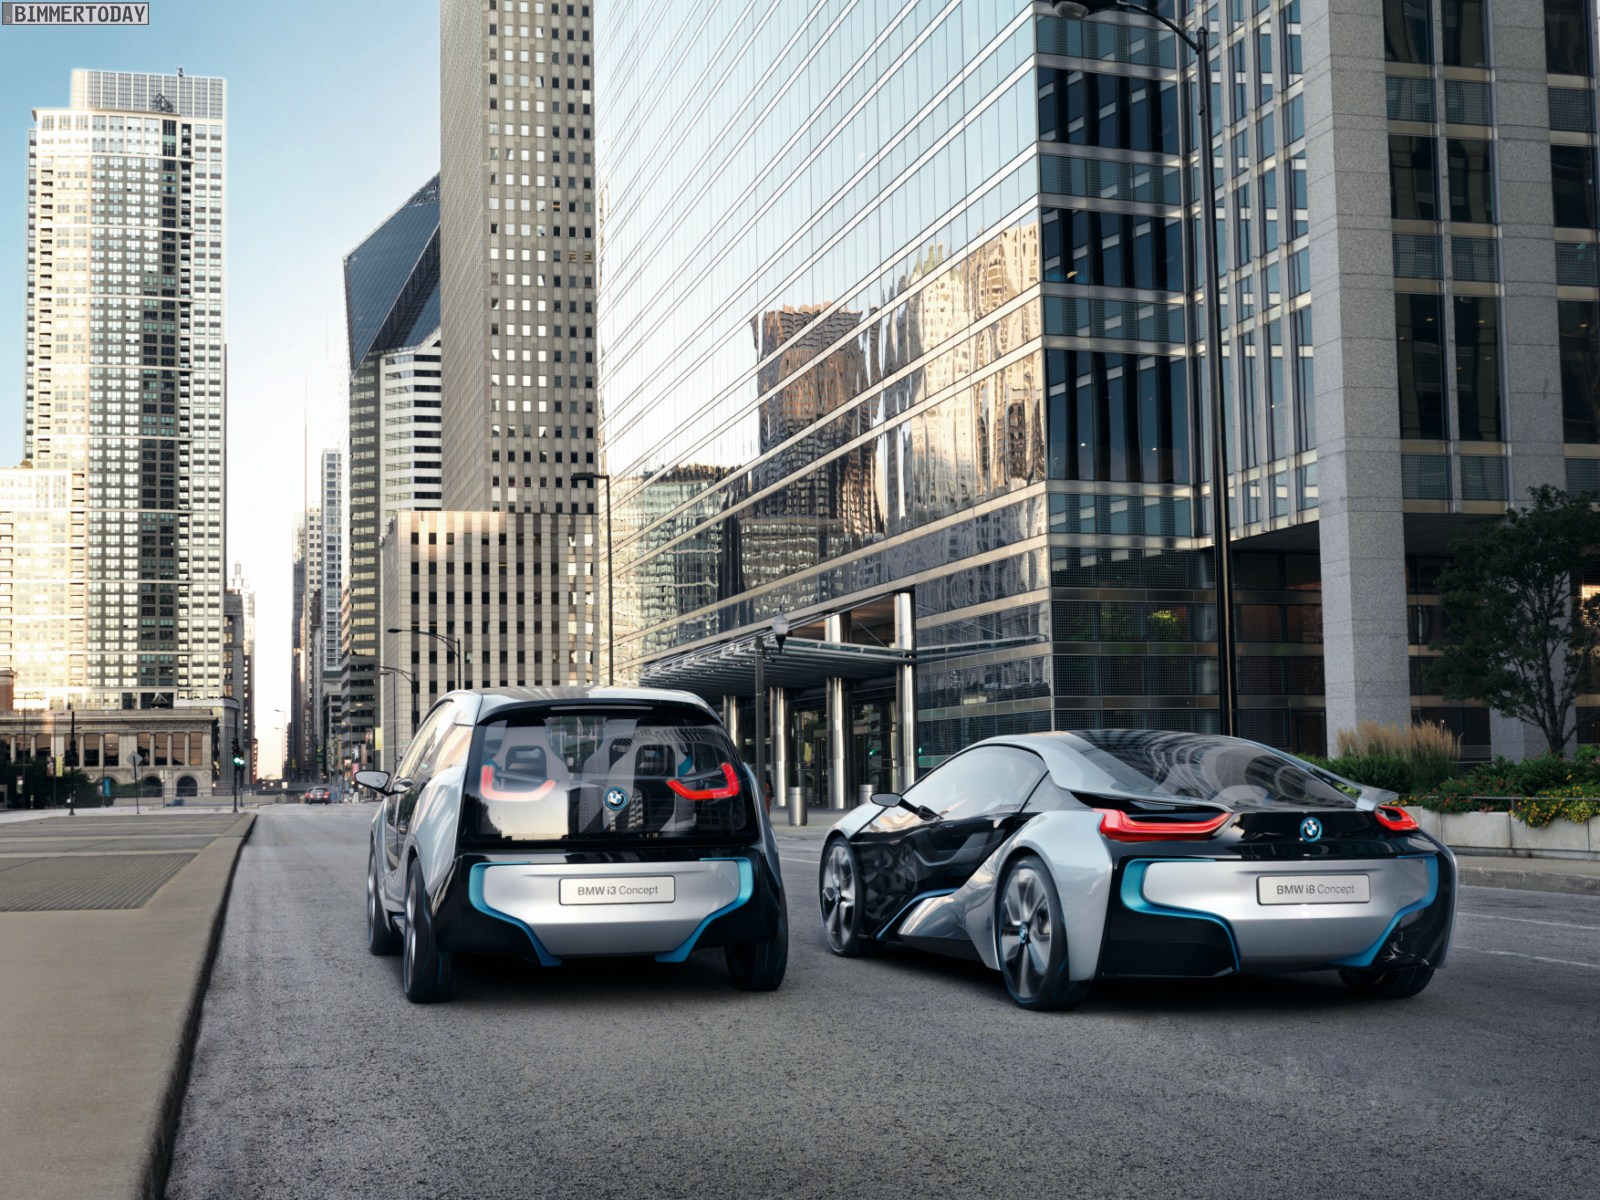 Bmw To Sell I3 And I8 Electric Vehicles Online Electric Vehicle News